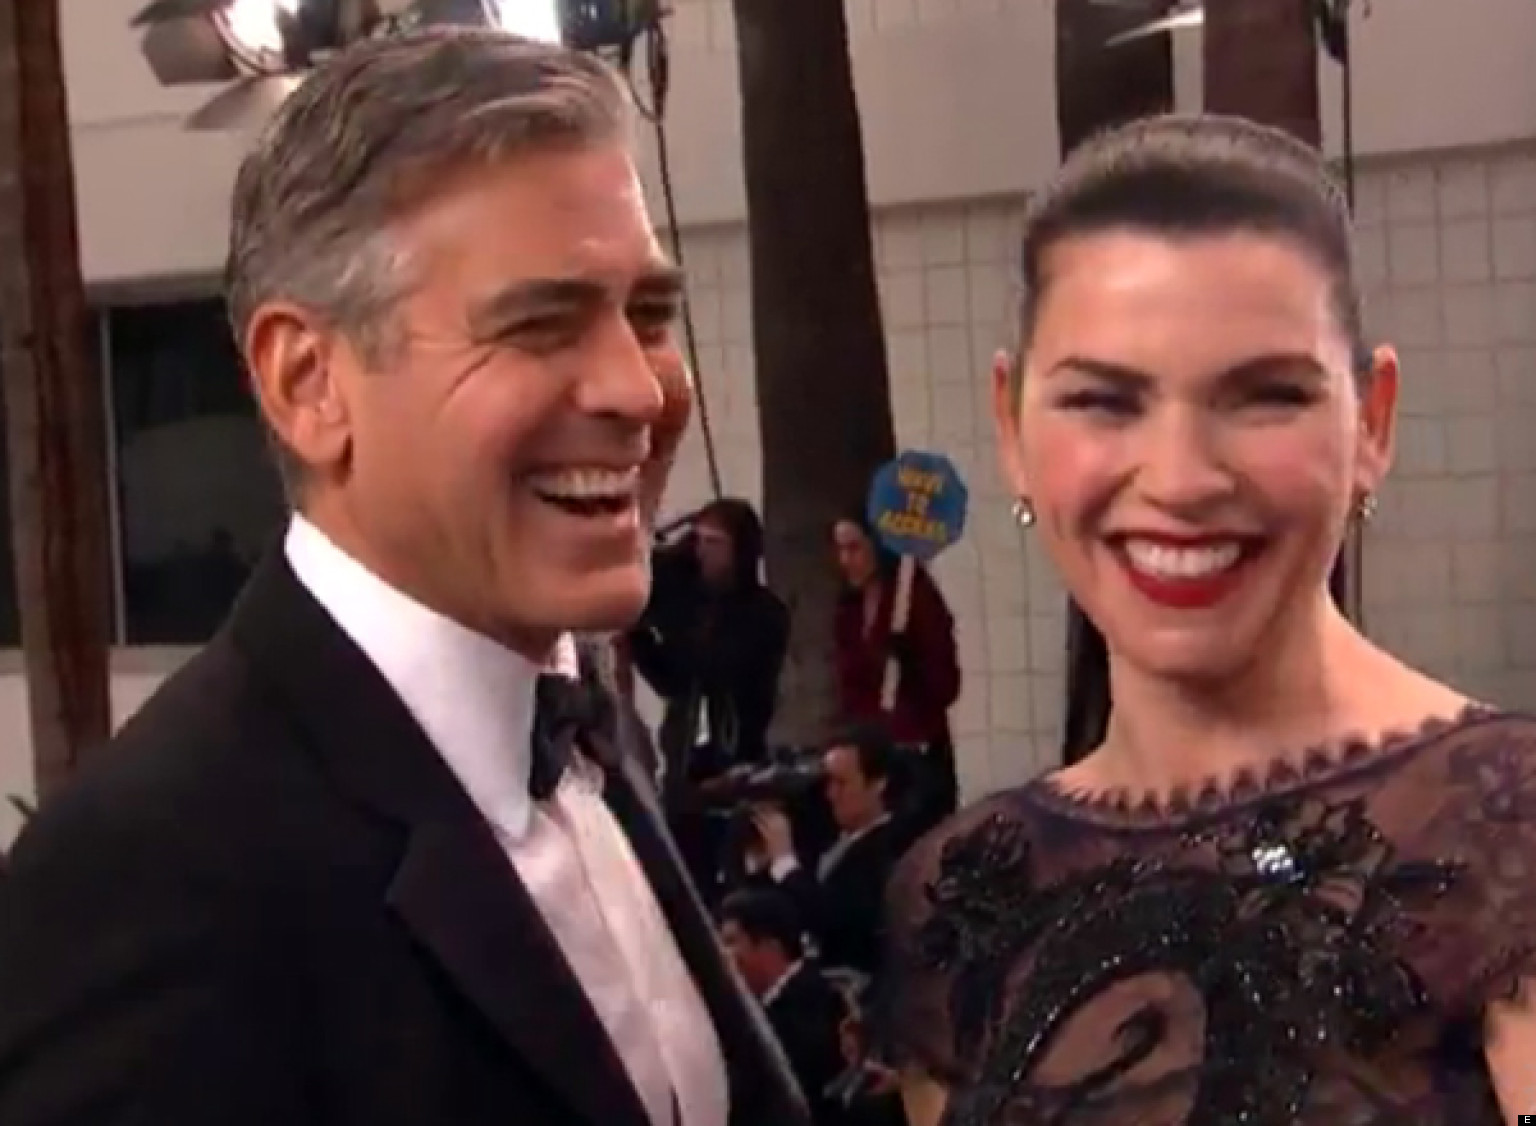 George Clooney On 'The Good Wife'? Julianna Margulies Says ...